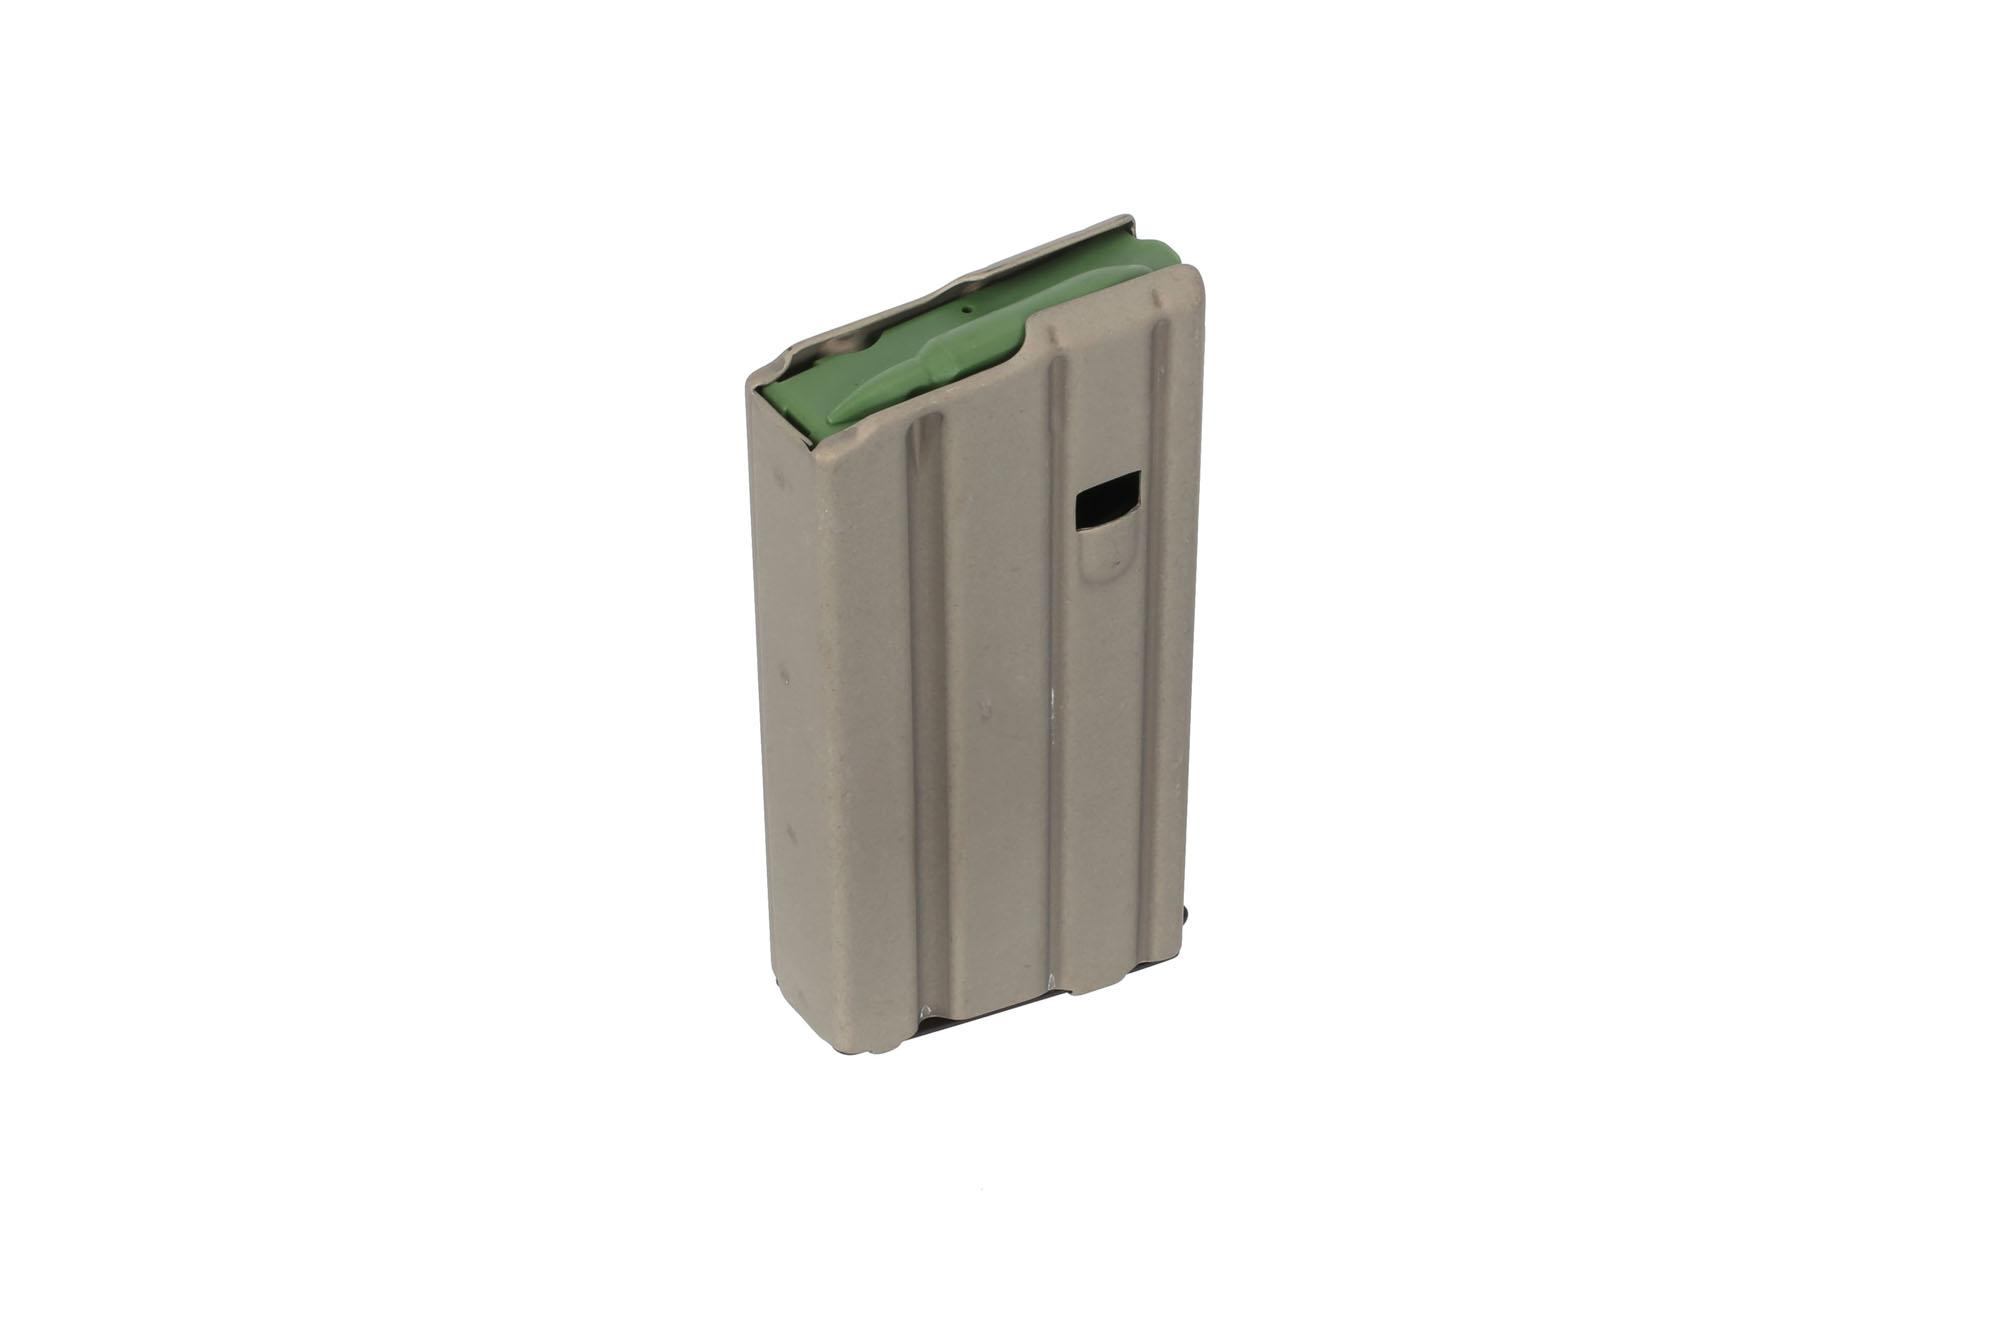 The Ammunition Storage Components straight 5.56 magazine with grey finish has a 20 round capacity